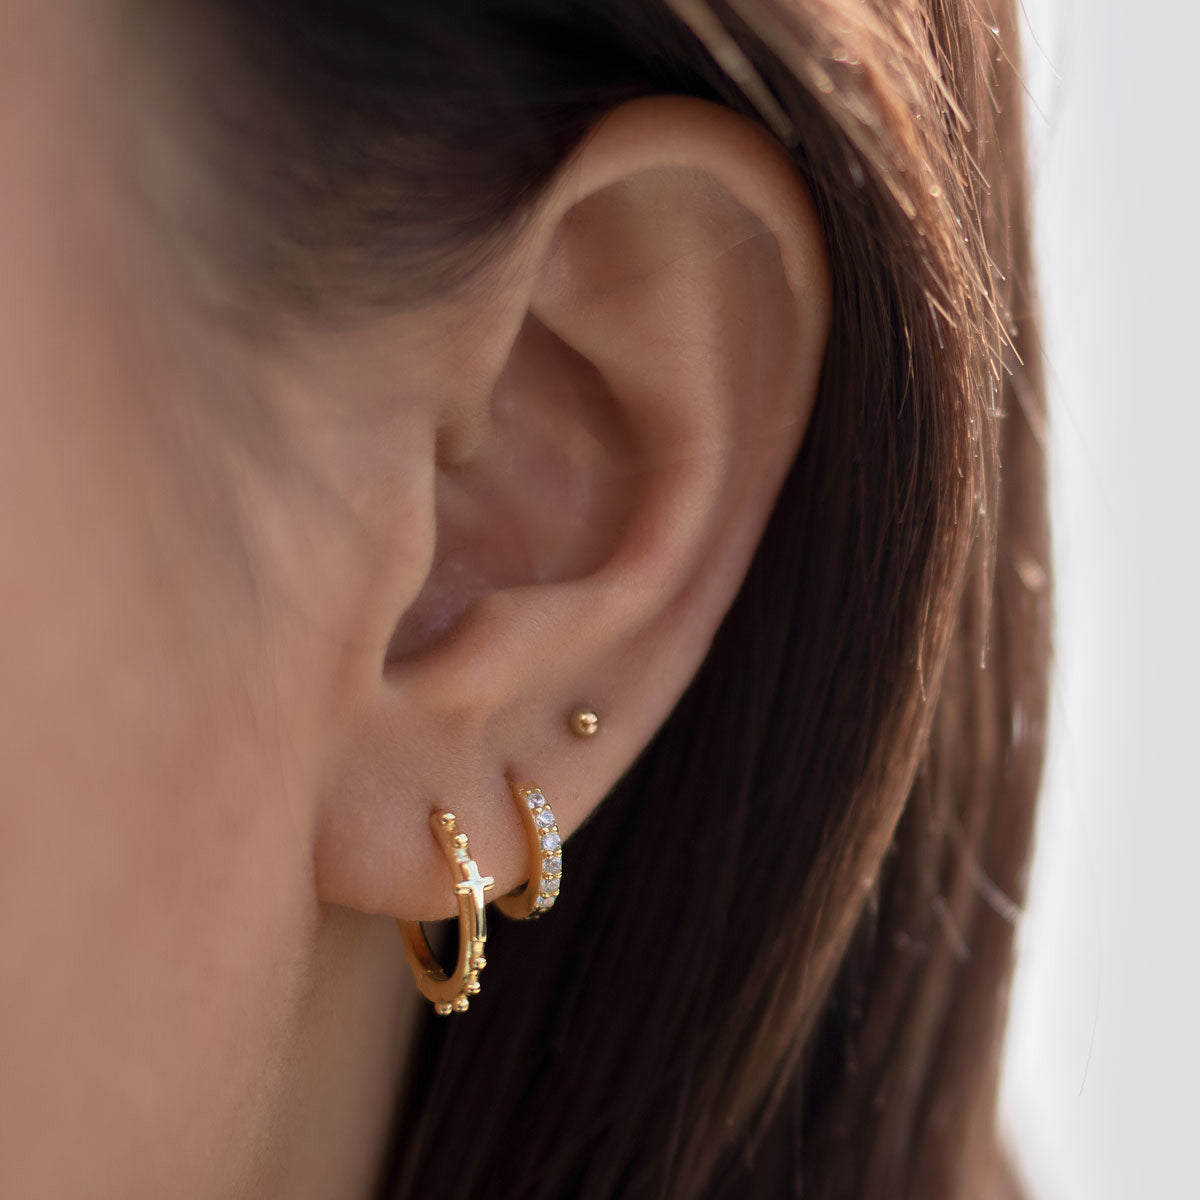 Ear stack made of Gold Cross Bead Huggies, Pave Gold Huggie, and Tiny Sphere stud earring